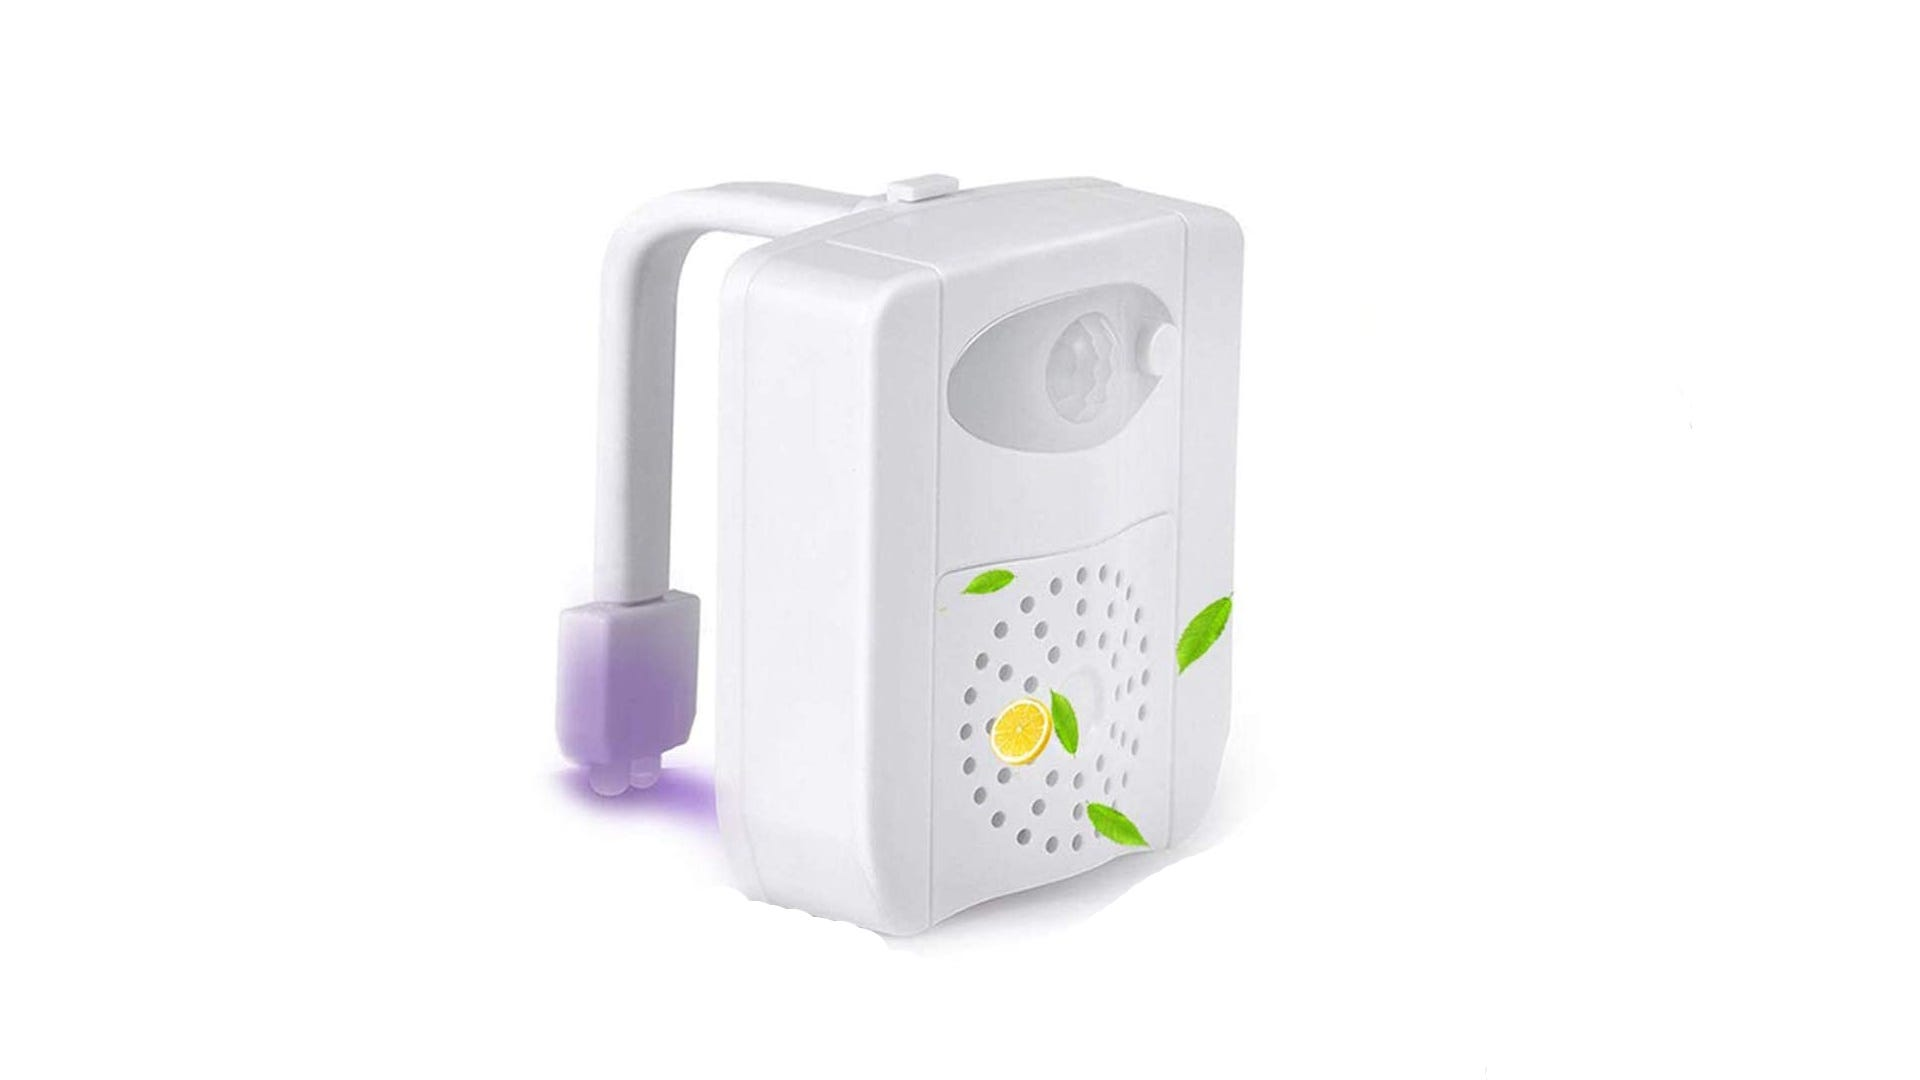 white toilet light with motion sensor and aromatherapy vent on front